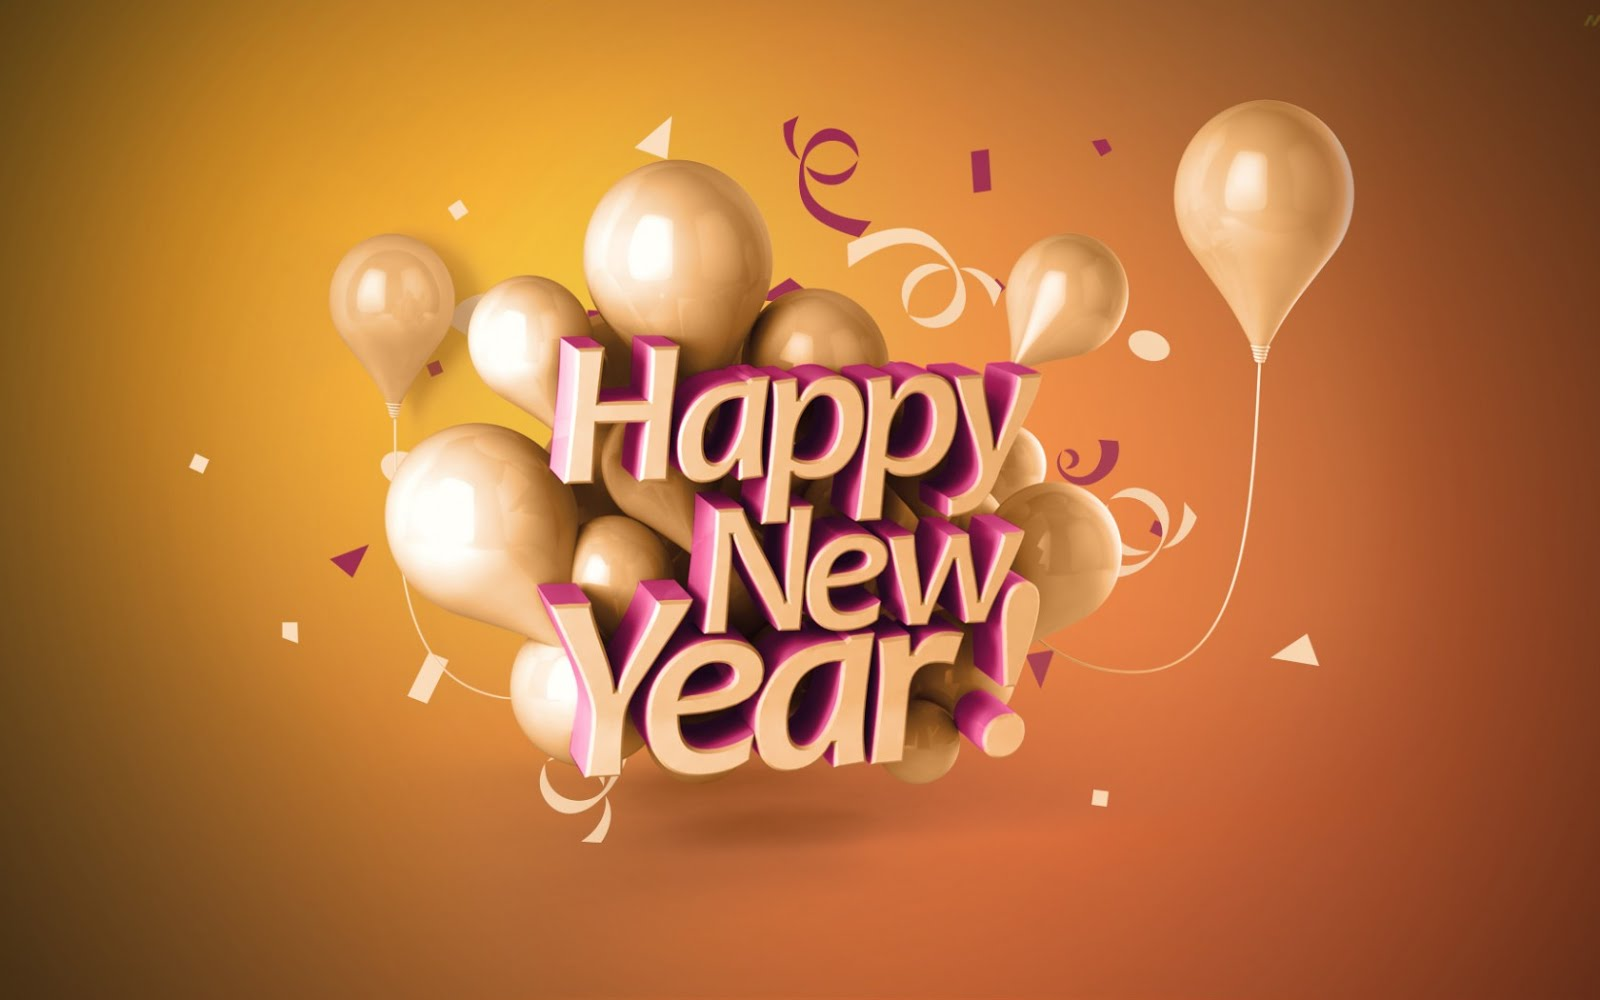 Wallpaper download karne wala apps - Happy New Year 2017 Balloon Images